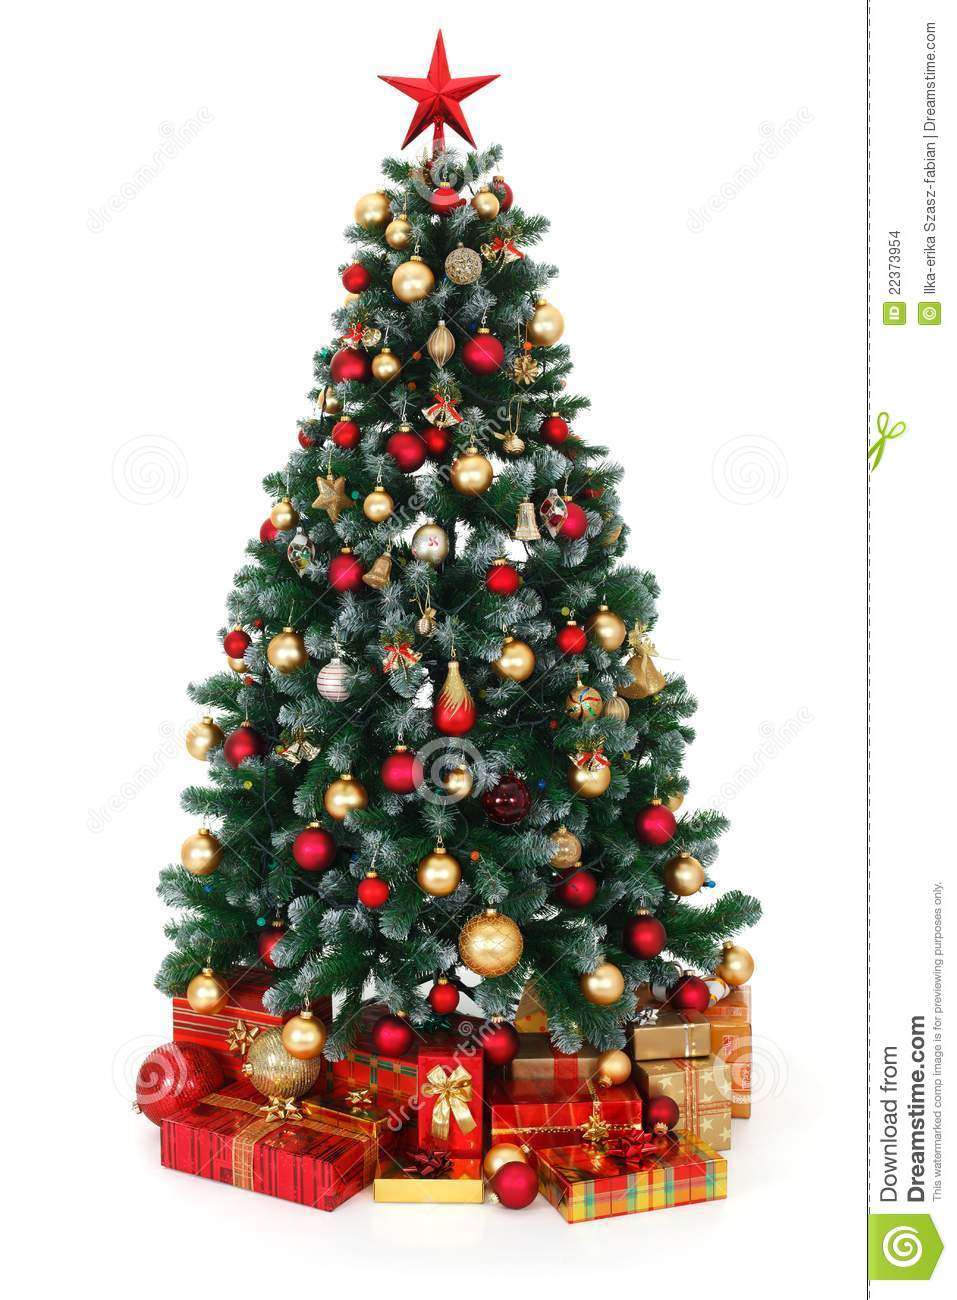 green decorated christmas tree and presents - Green Christmas Tree Decorations